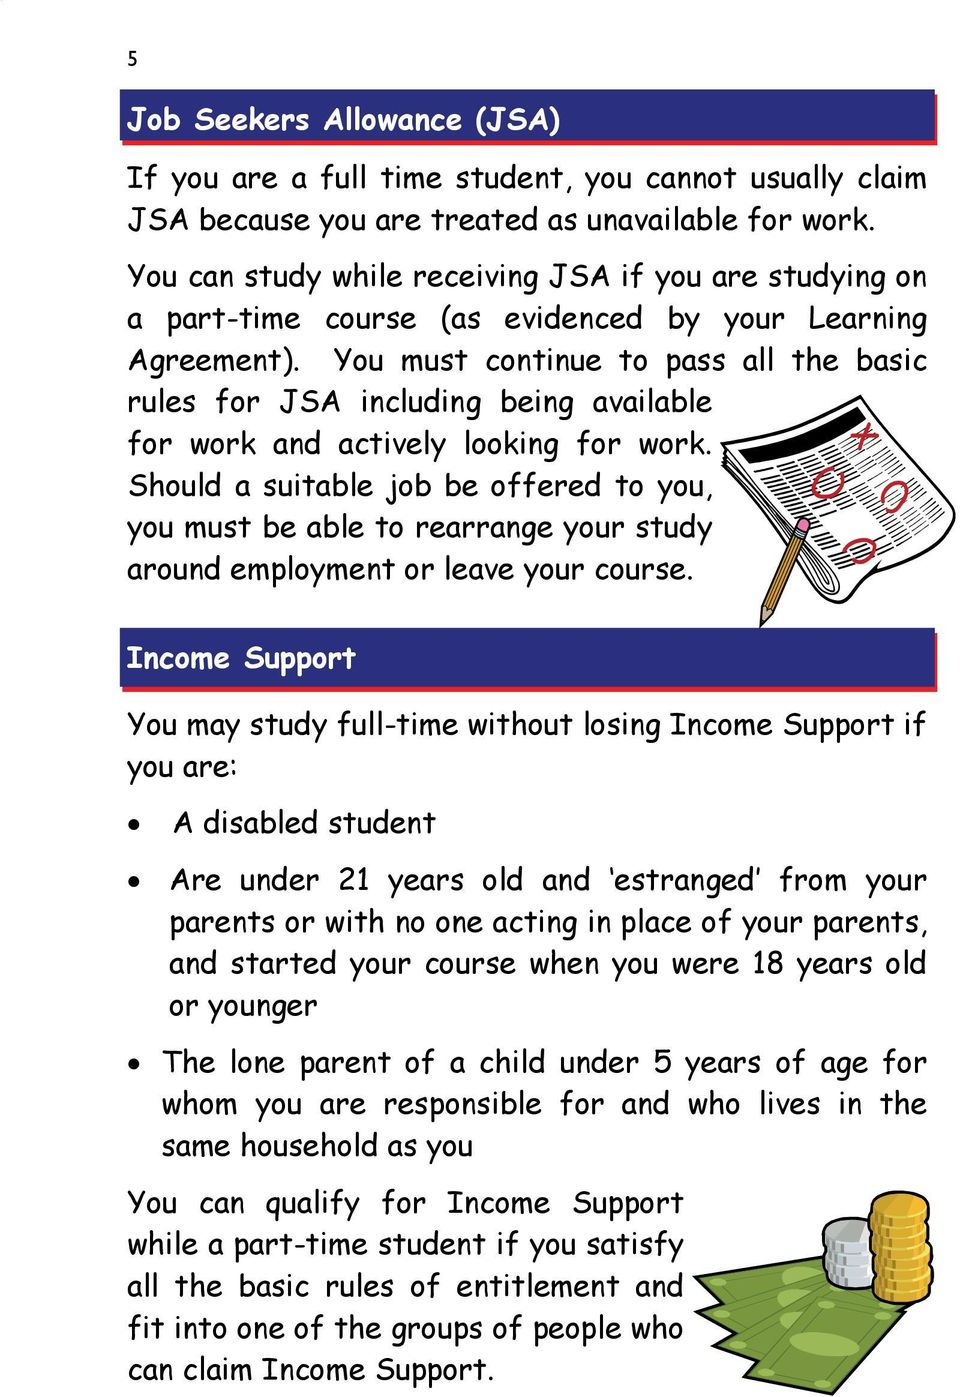 You must continue to pass all the basic rules for JSA including being available for work and actively looking for work.